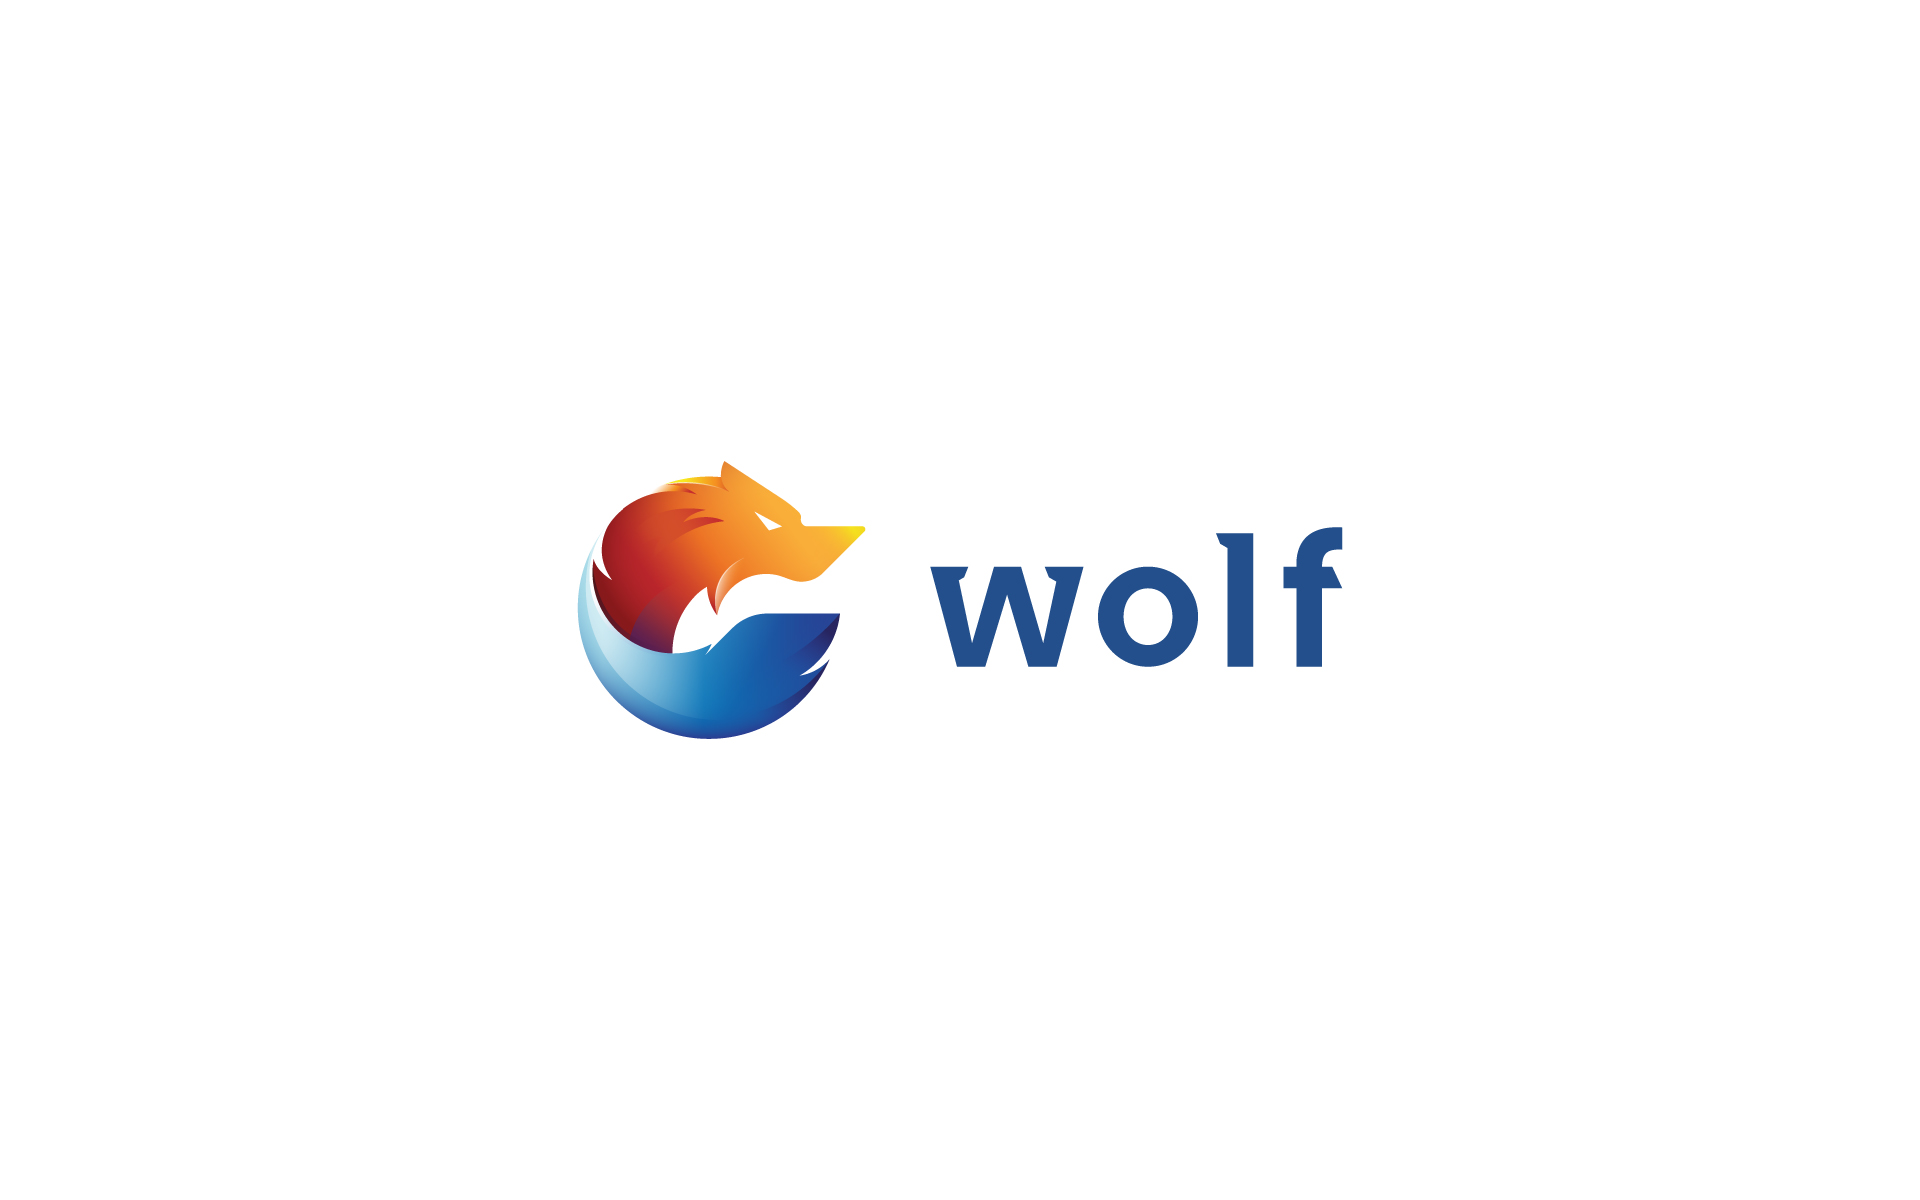 Wolf-logo-design-with-golden-ratio-logo-for-sale